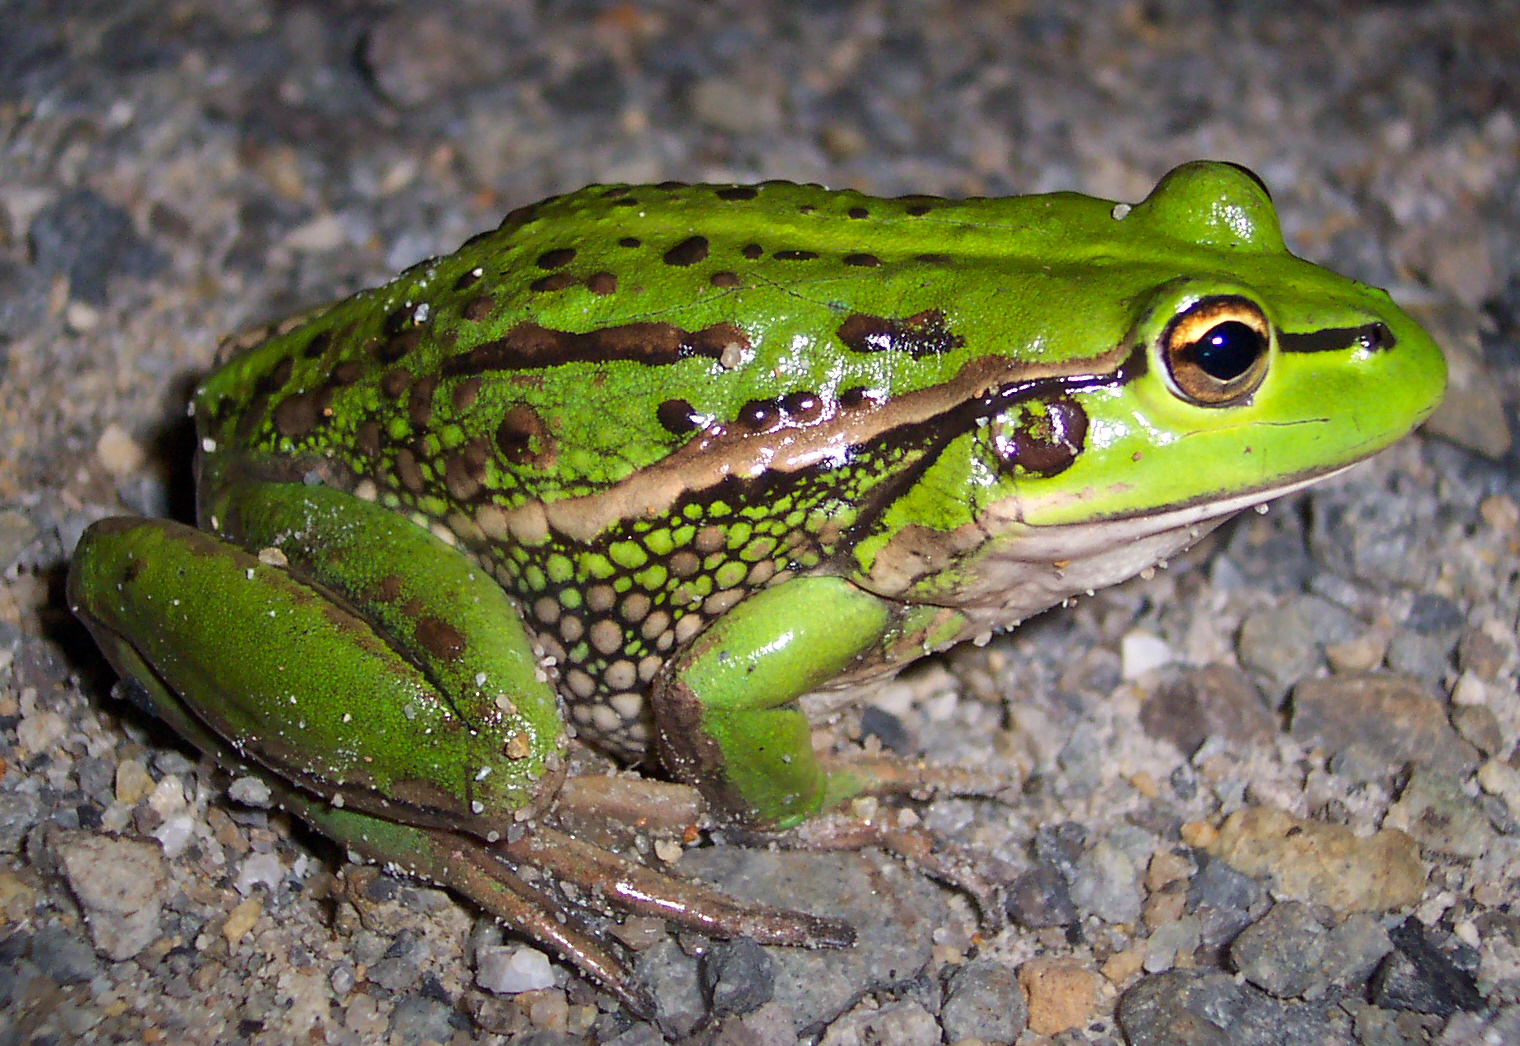 Growling grass frog / Credit: Wikimedia